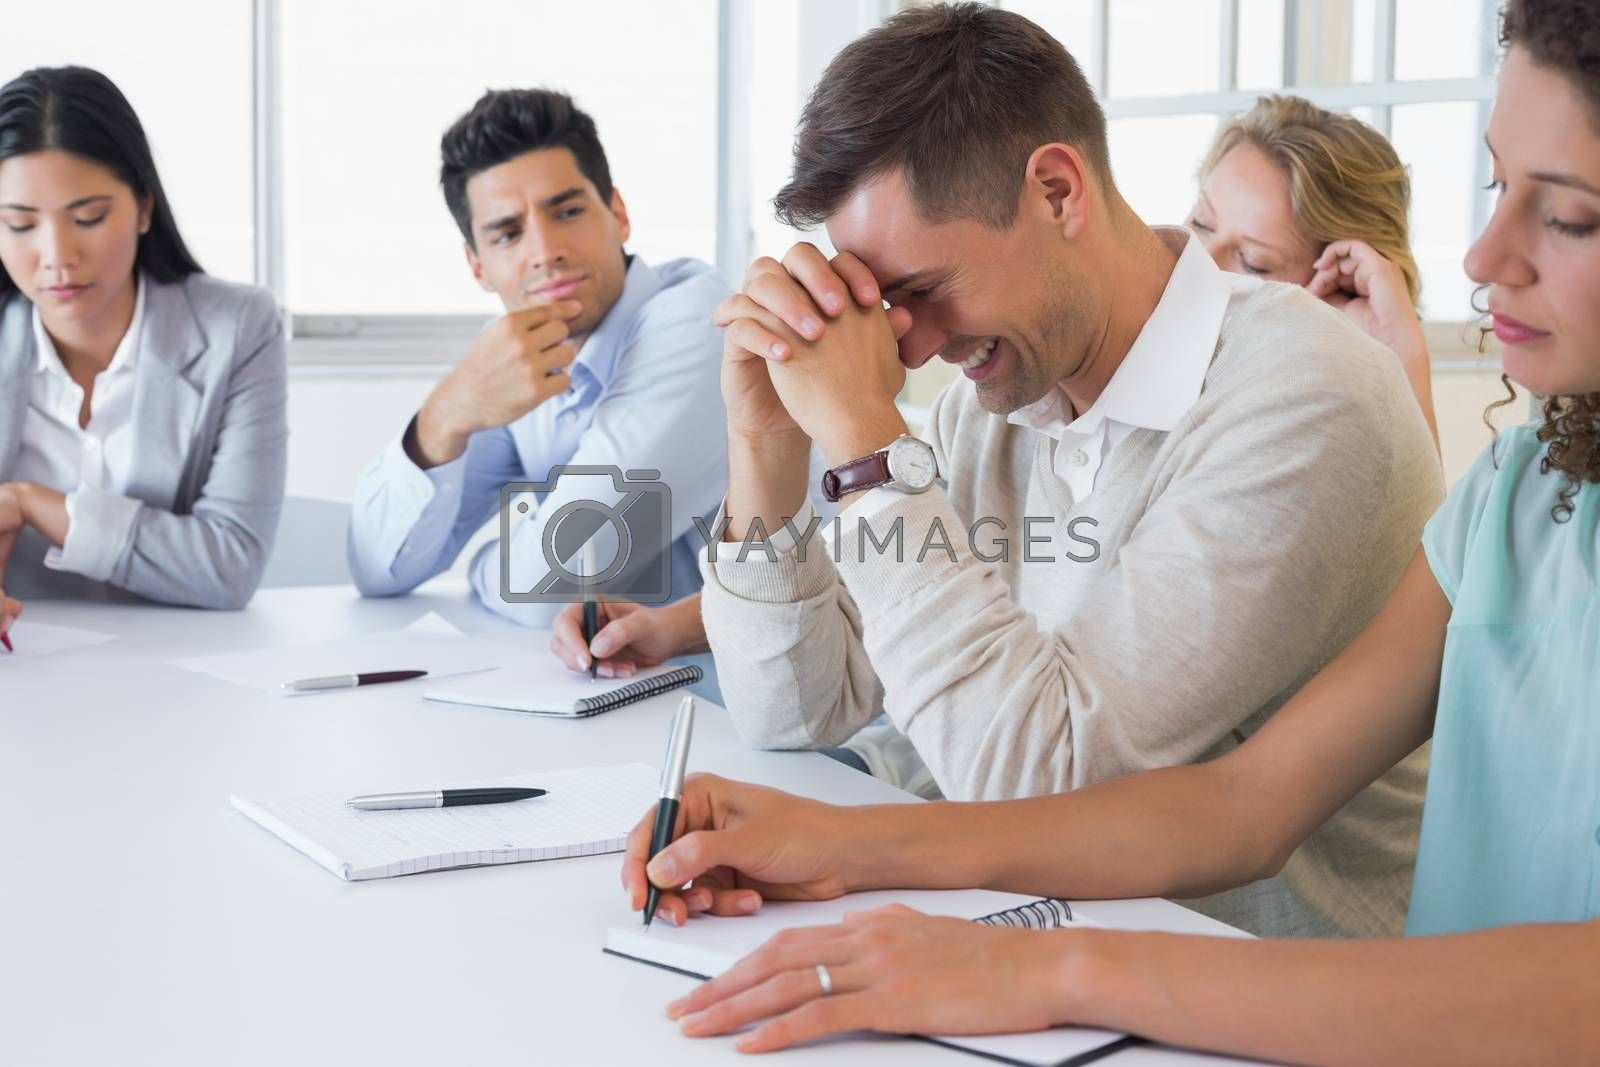 Royalty free image of Casual businessman trying not to laugh during meeting by Wavebreakmedia